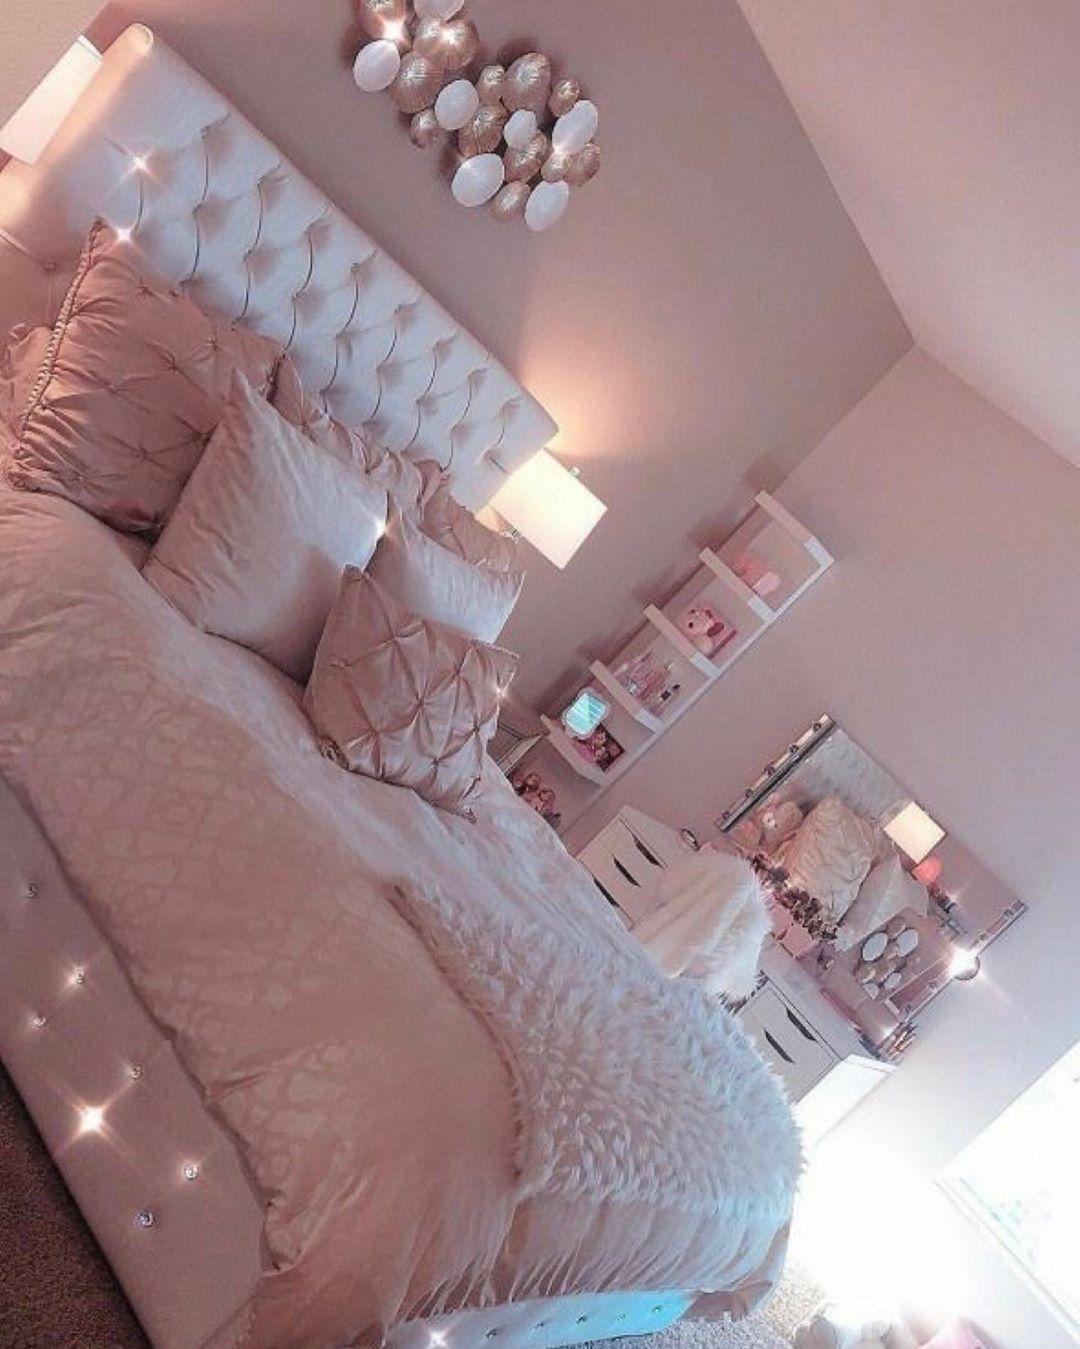 Bedroom Ideas Explore Explorepage Baddie Cute Outfits Bed Bedroomdecor Follow Pink Living Room Tumblr Decor